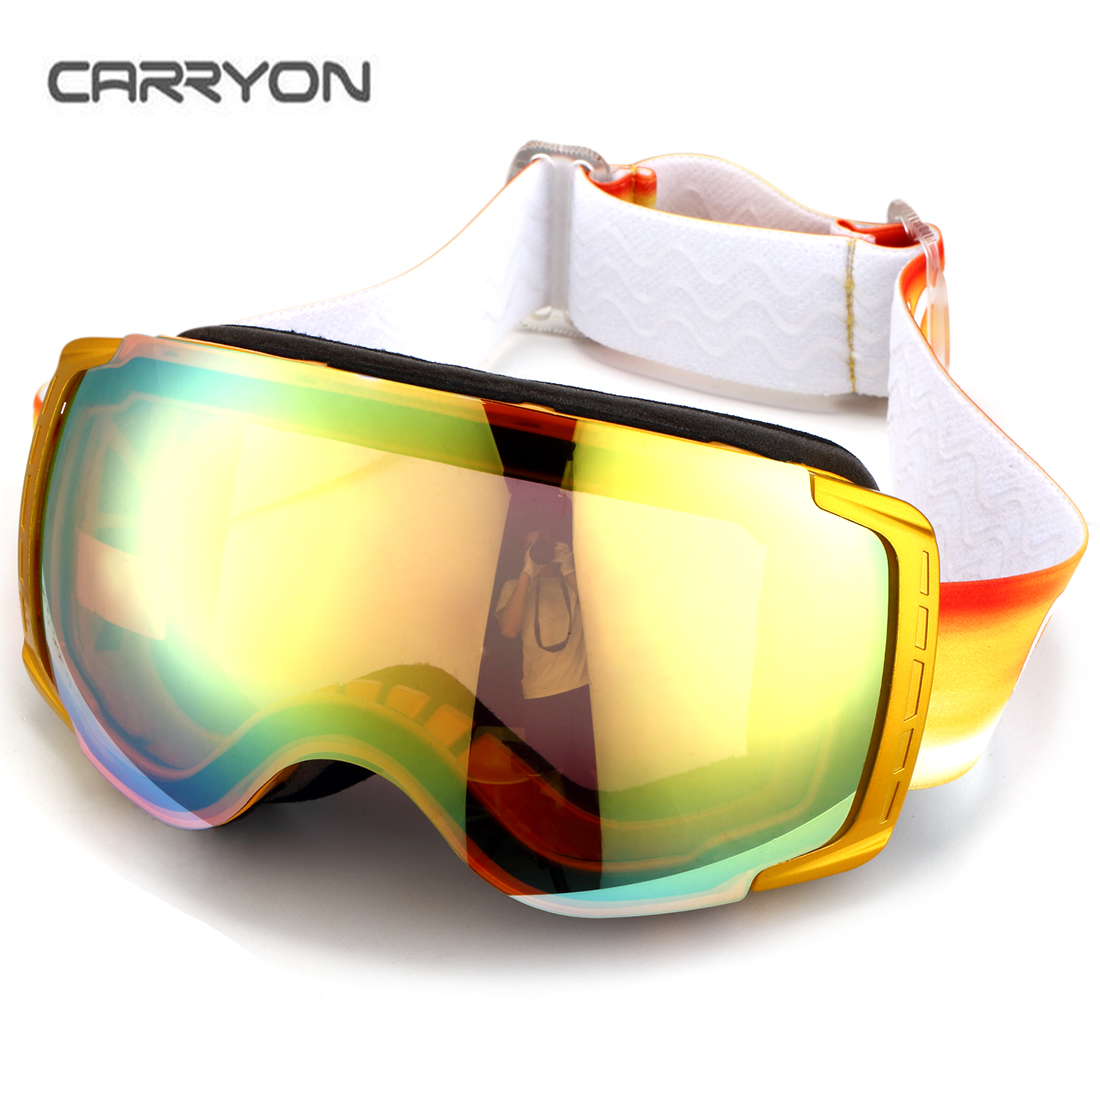 Carryon Snowboard Ski Goggles Anti-fog UV Mirror Lens OTG Over Glasses Womens Mens by